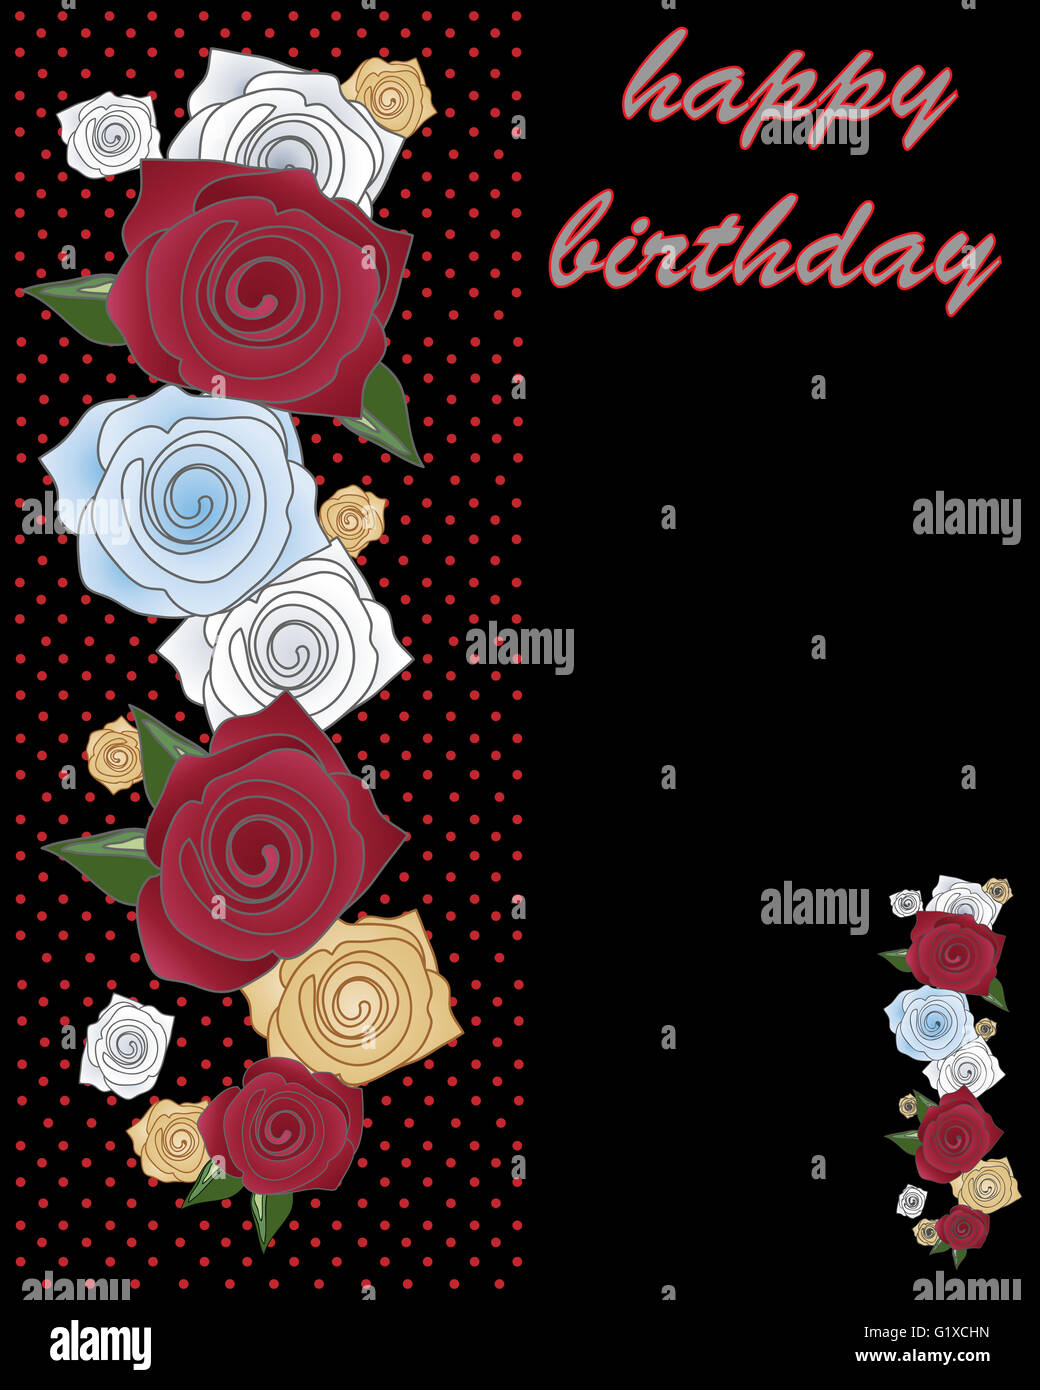 An Illustration Of A Greeting Card Decorated With Stylized Roses And